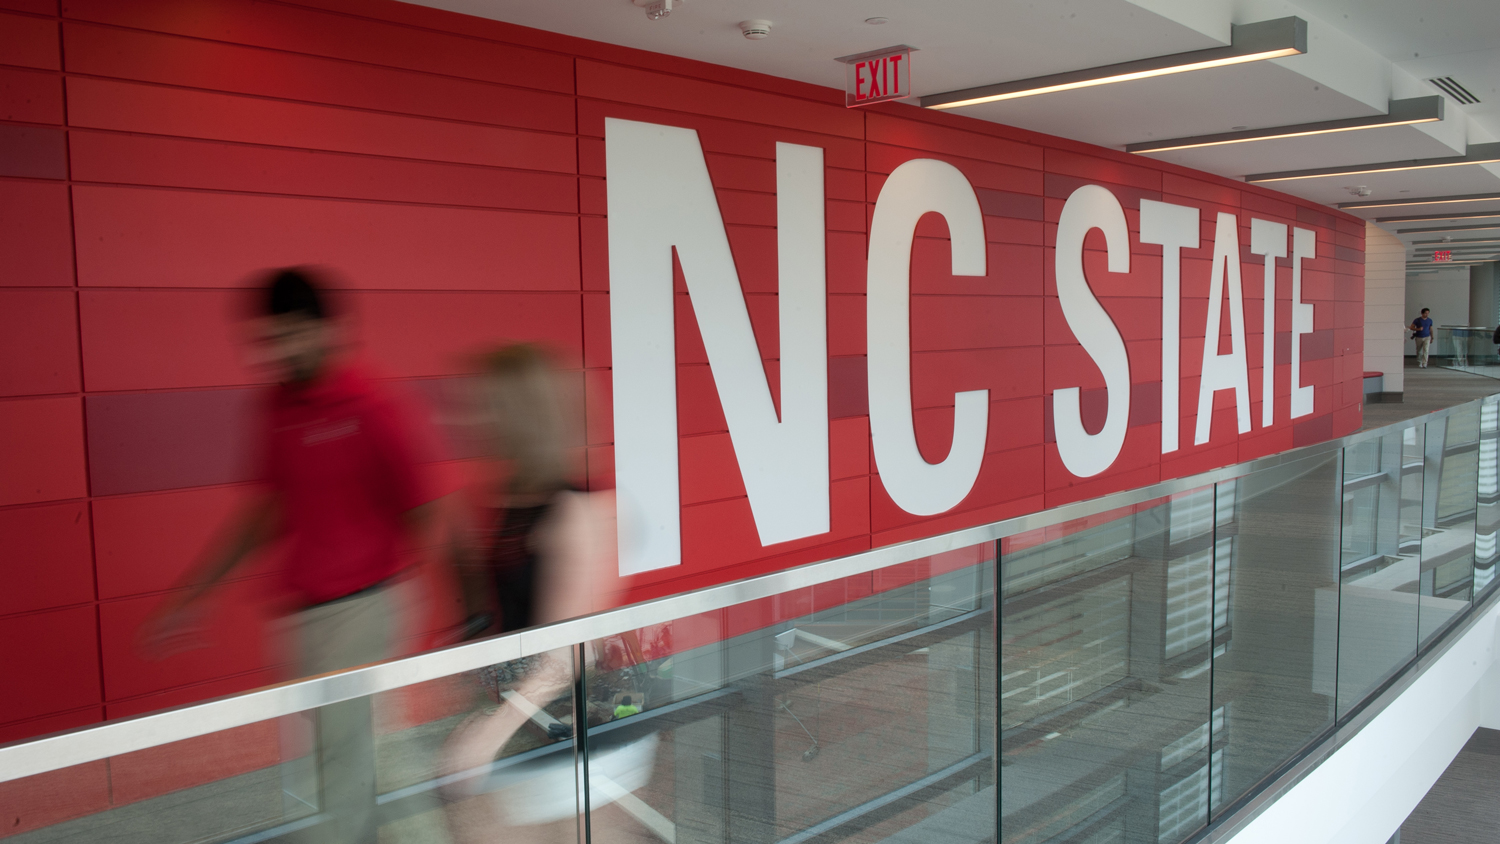 NCState Tally Union - Academics - College of Natural Resources at NCState University